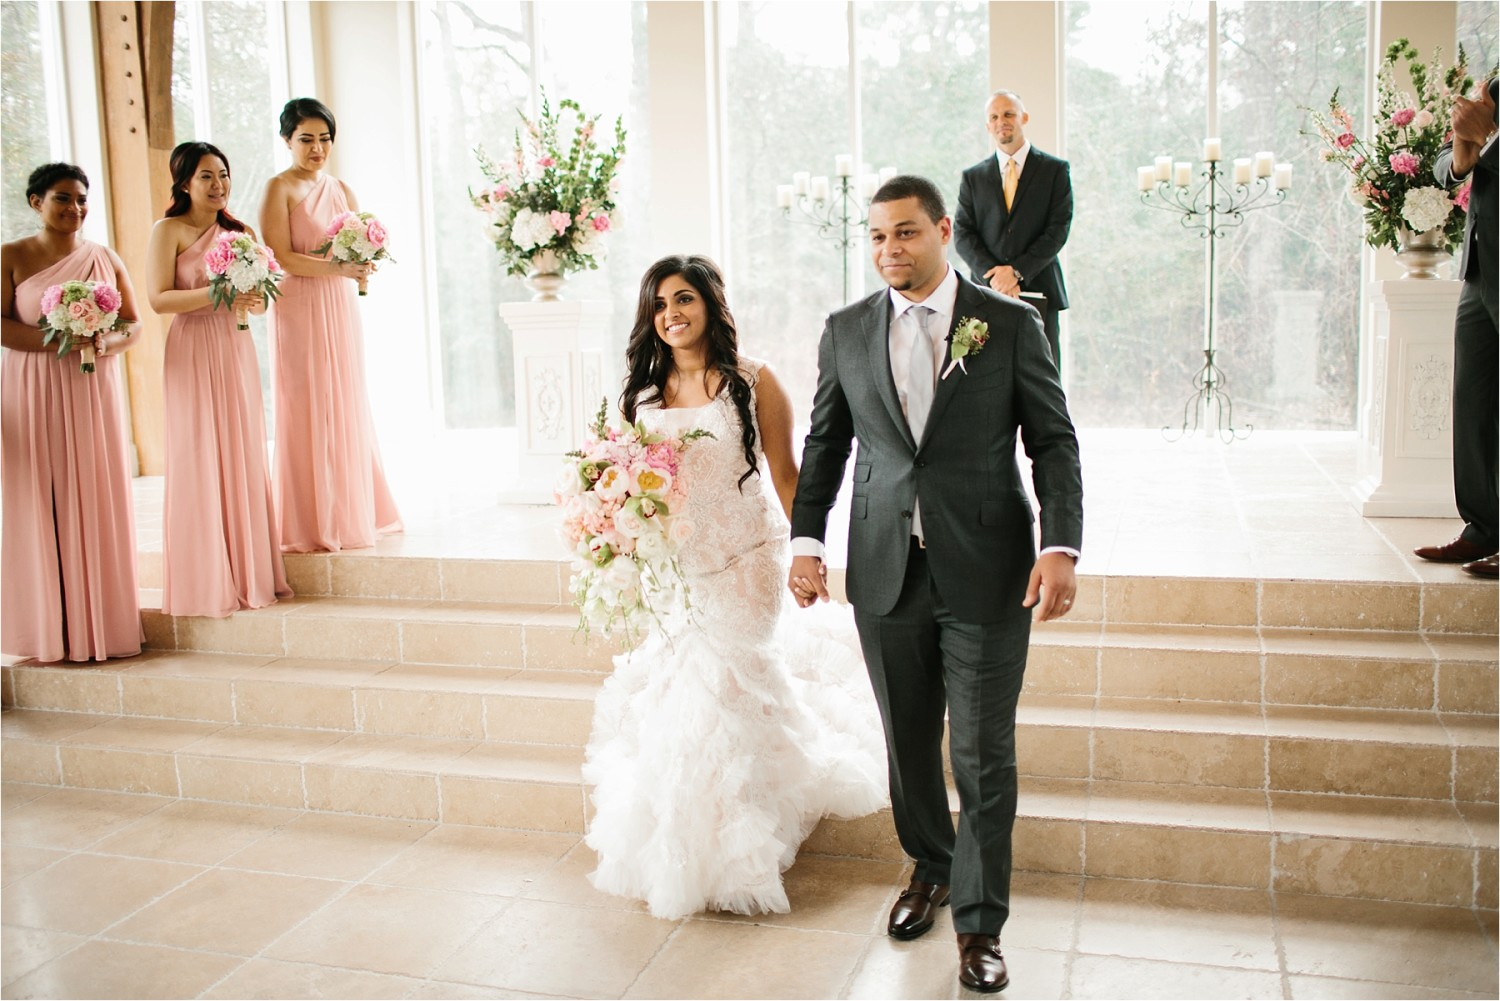 Jeanpaul + Ann __ a colorful wedding at Ashton Gardens in Houston TX by North Texas Wedding Photographer Rachel Meagan Photography _ 30